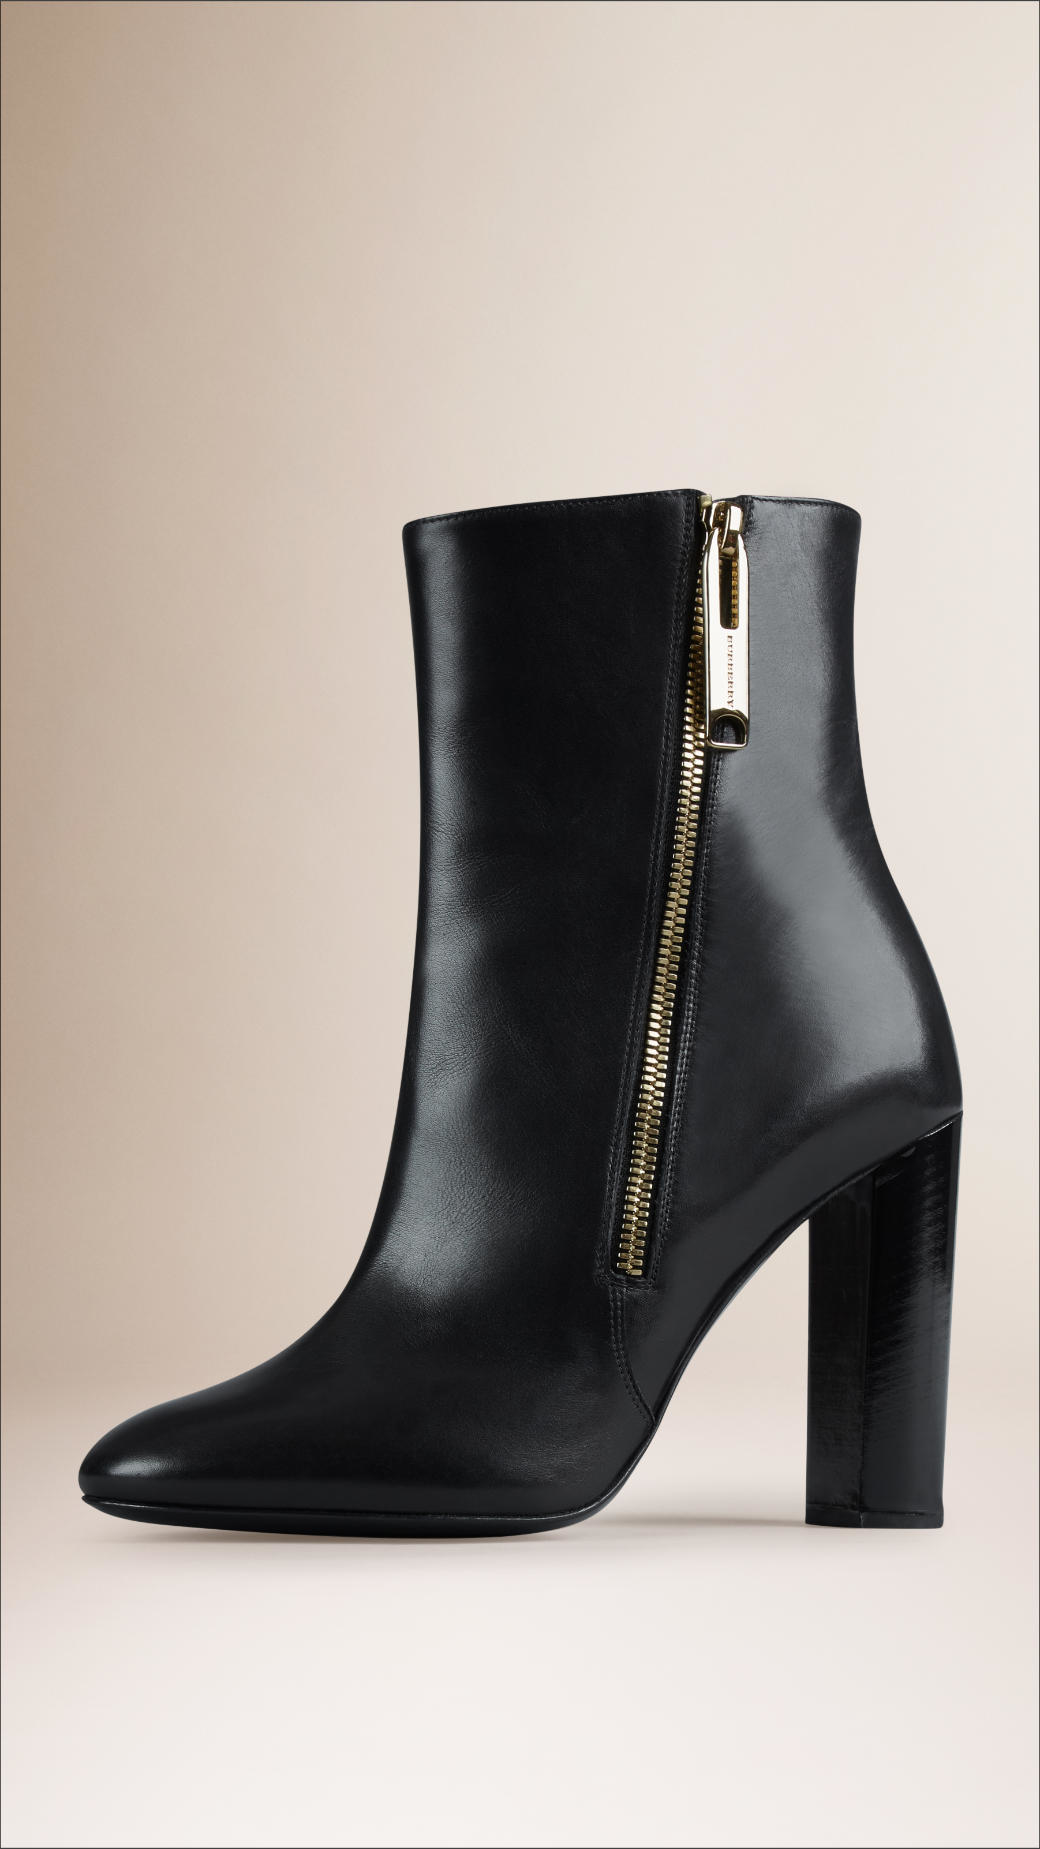 BurberryZipped ankle boots pf2nG